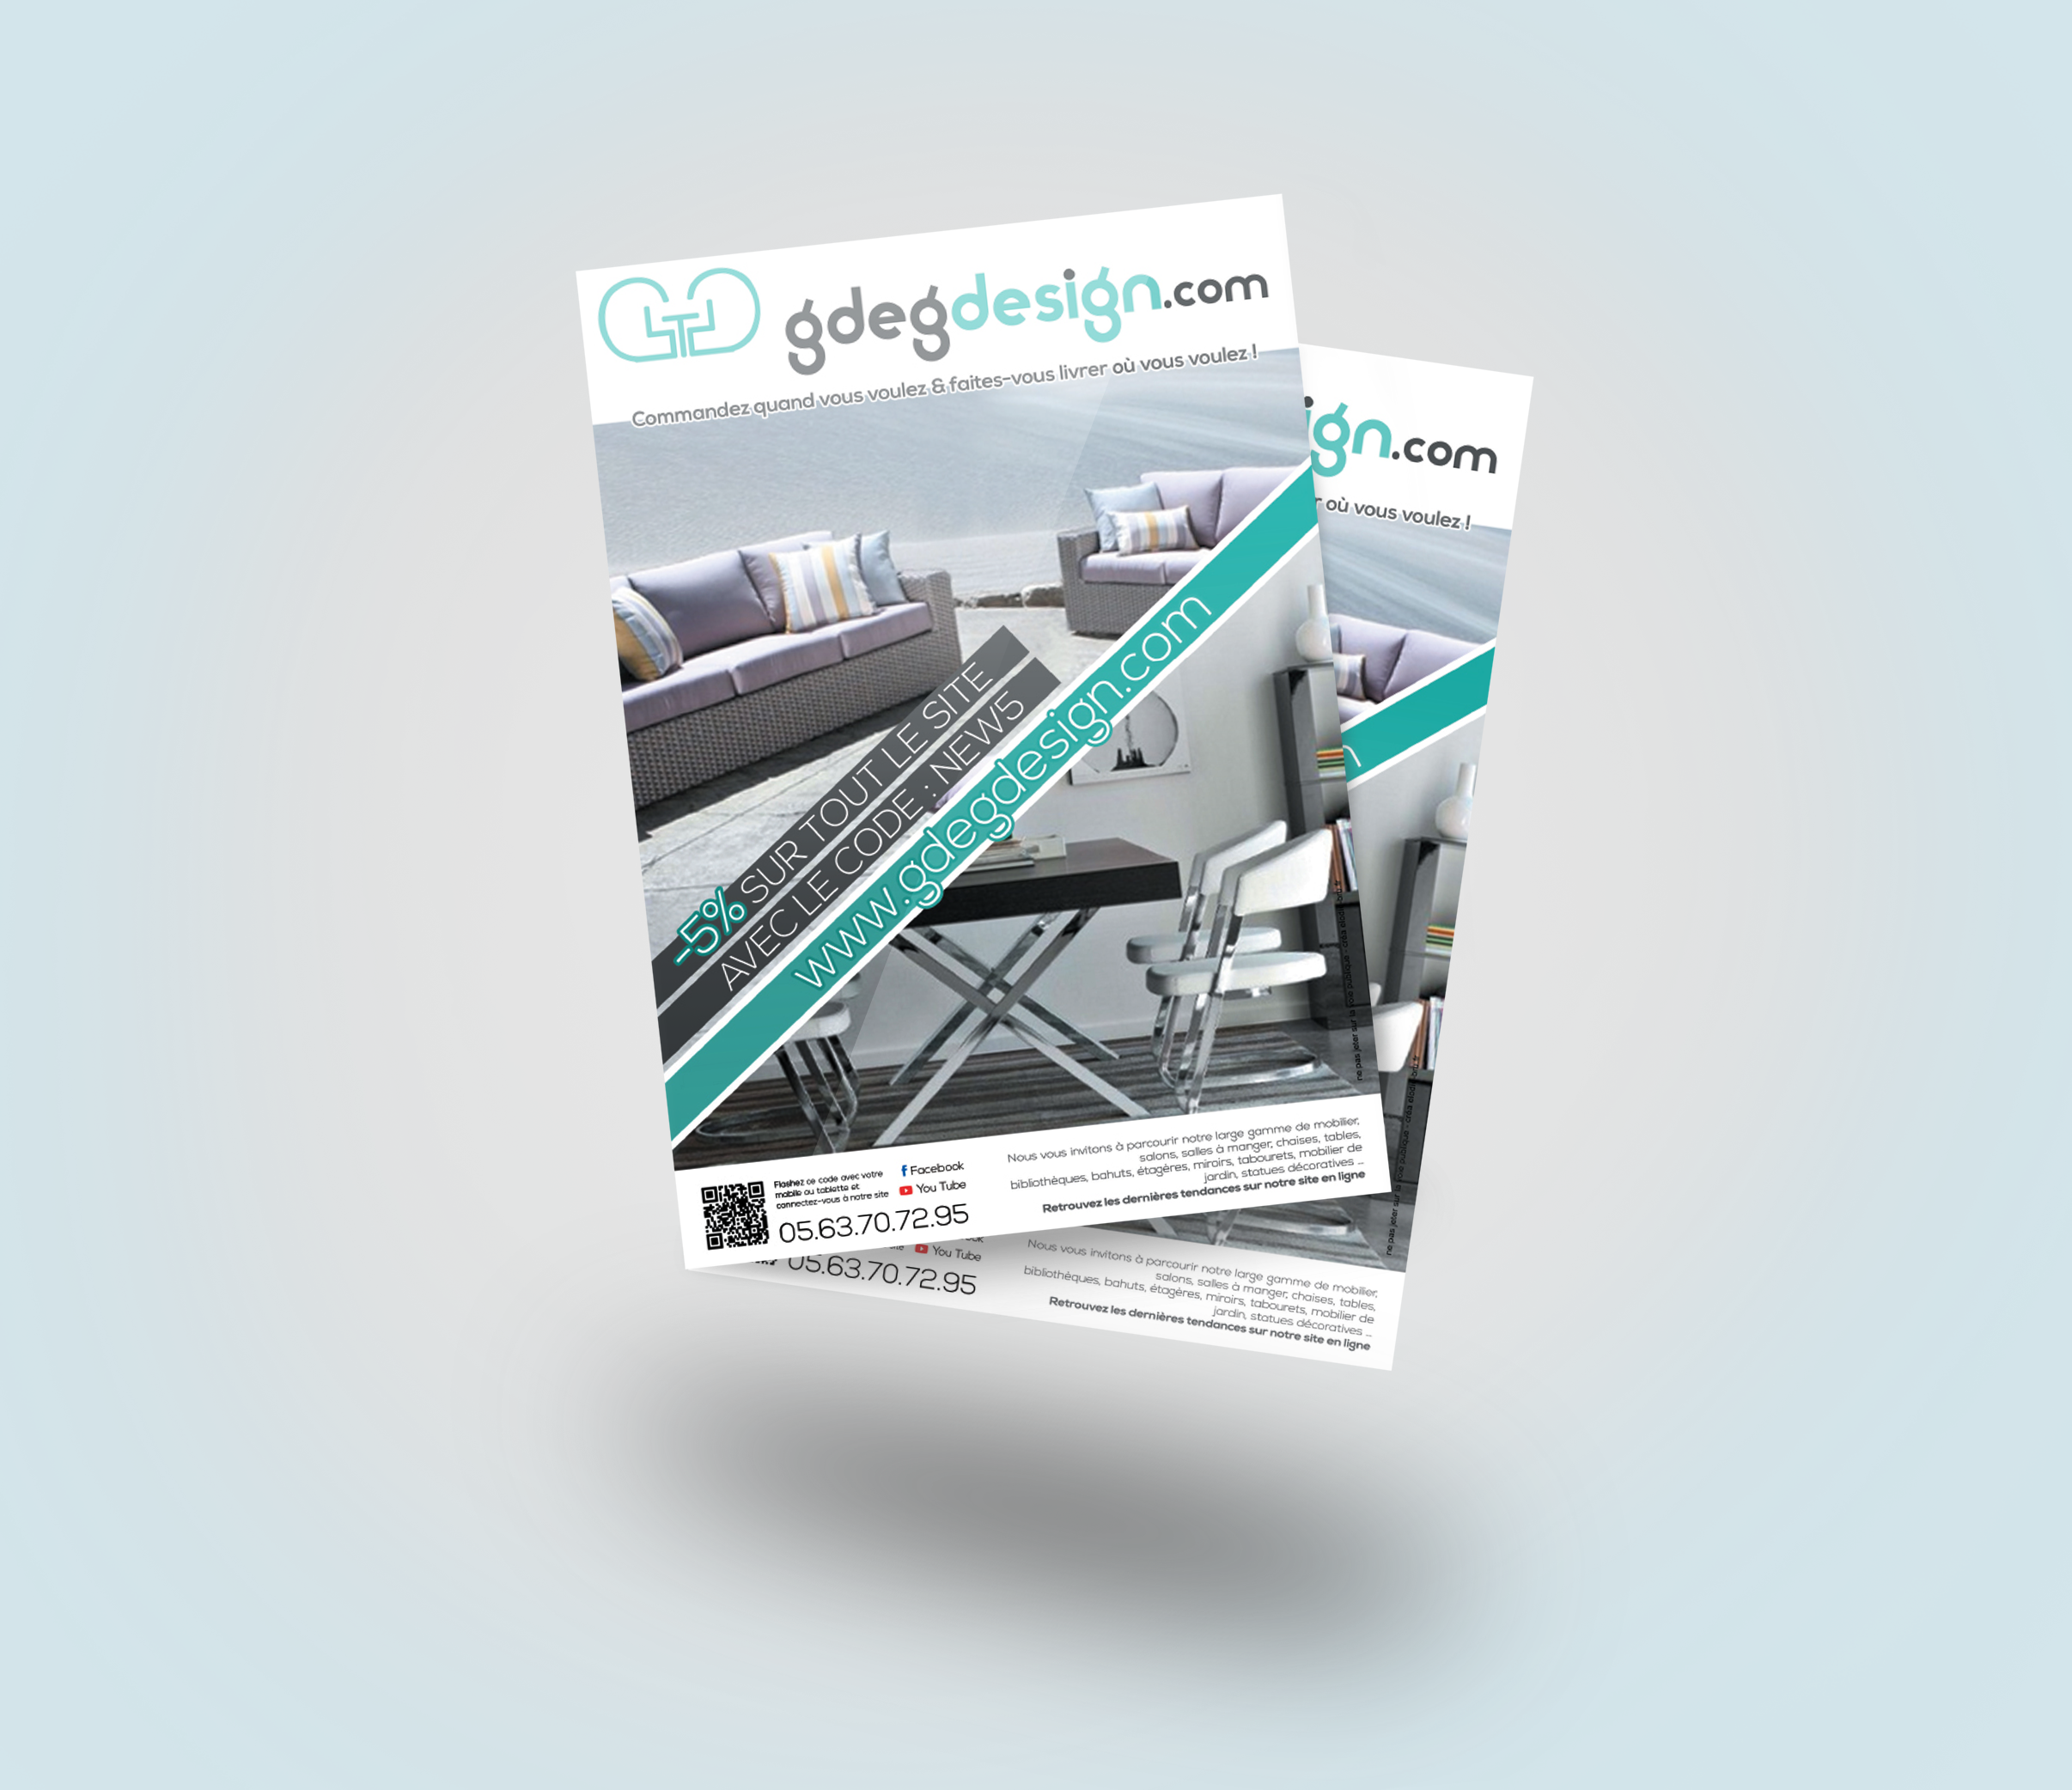 flyer-gdegdesign2014